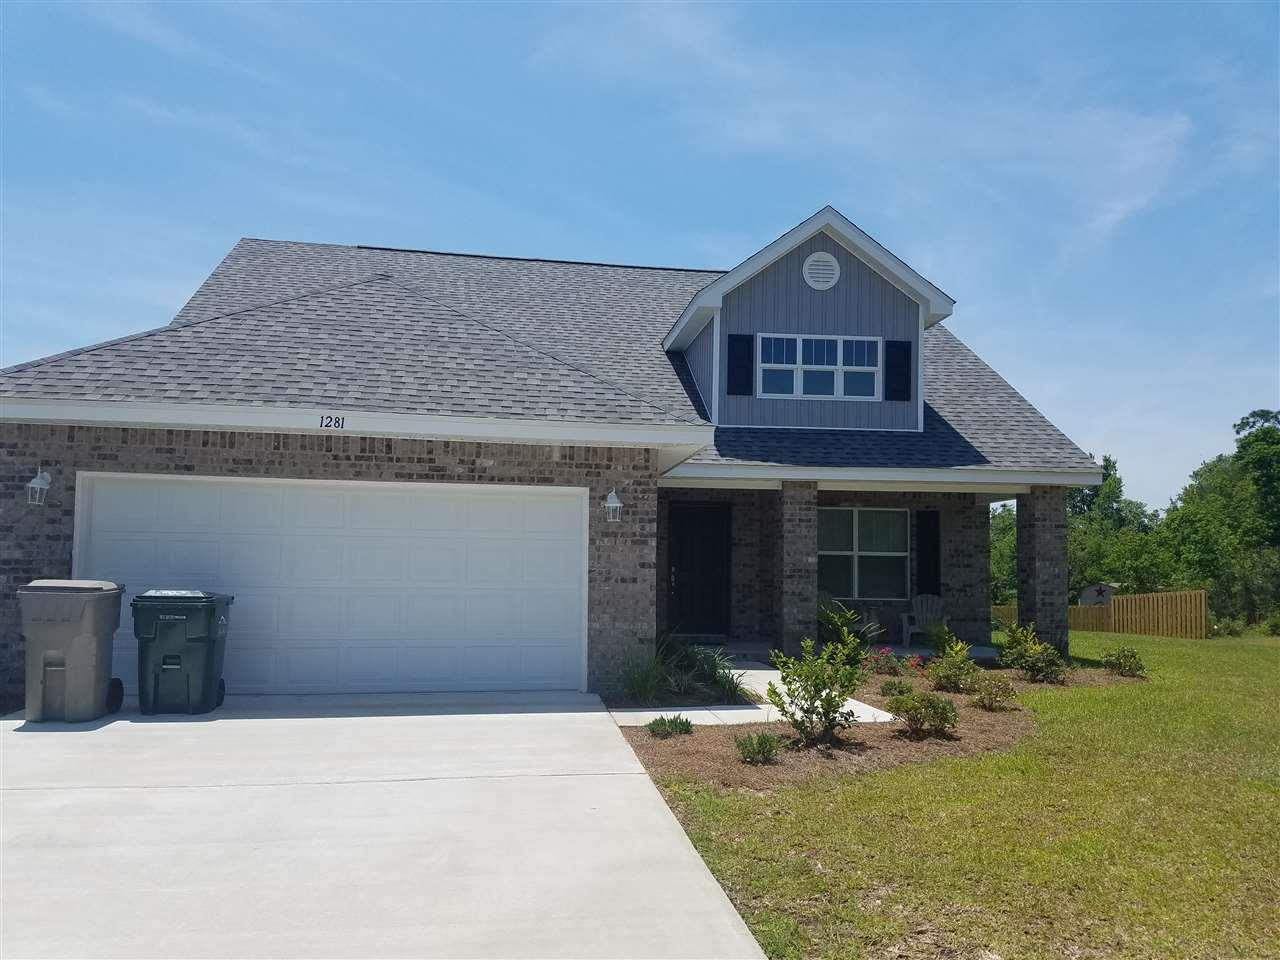 1281 BOAT TAIL CT, CANTONMENT, FL 32533